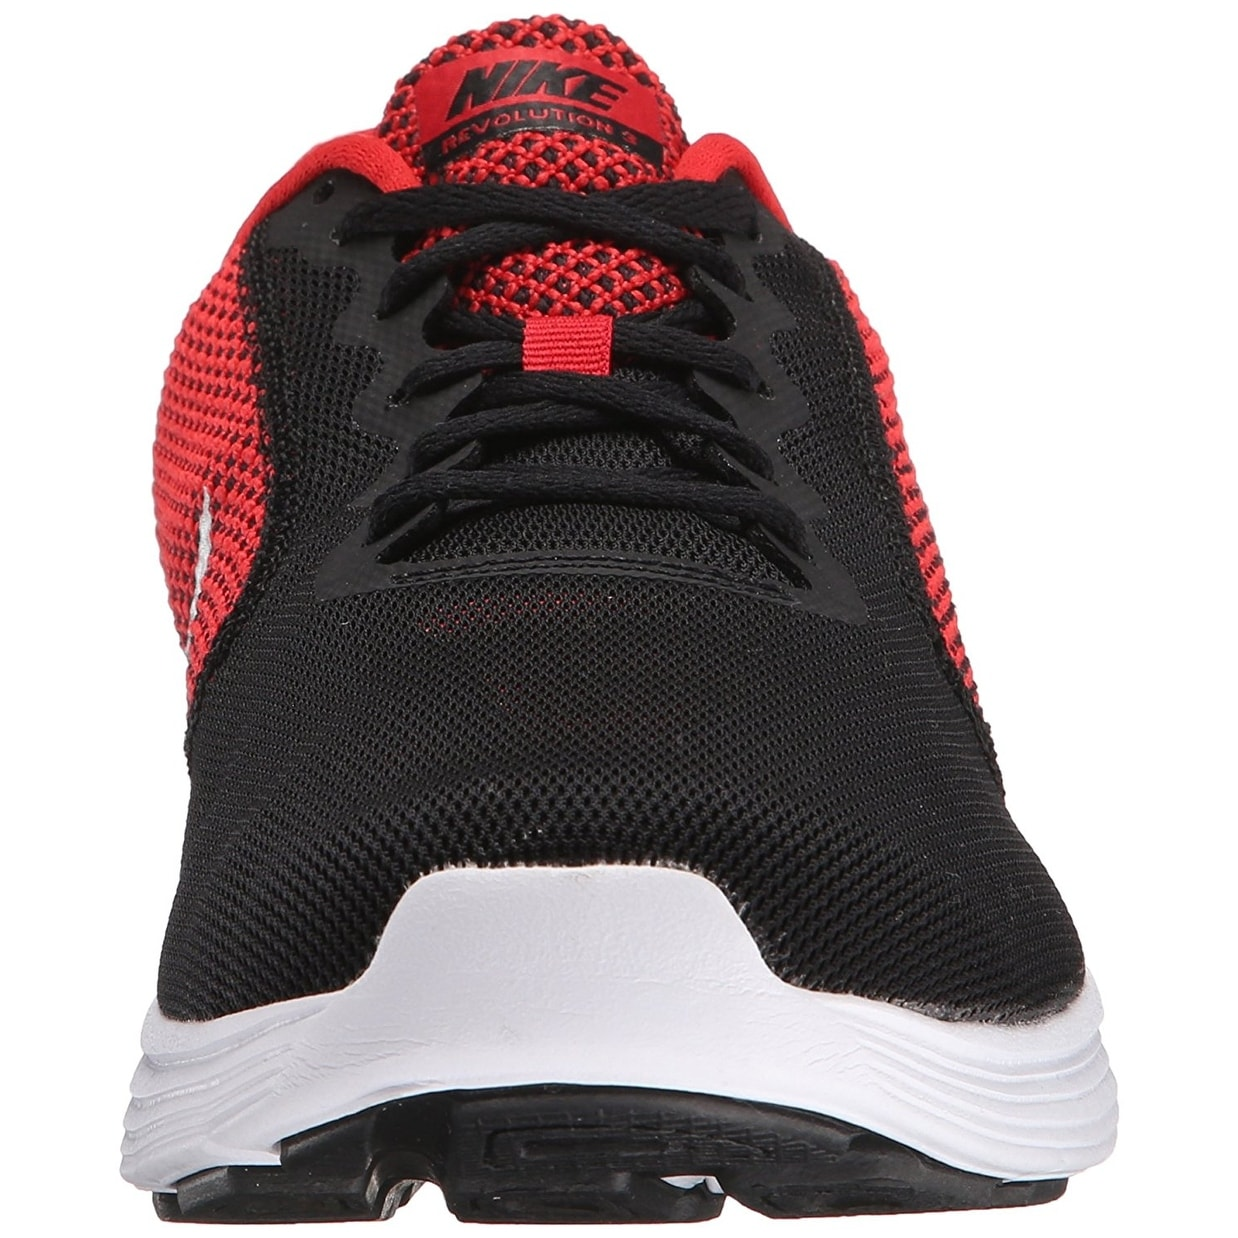 NIKE Men\u0027s Revolution 3 Running Shoe, University Red/Metallic Silver/Black  - Free Shipping Today - Overstock.com - 24412190